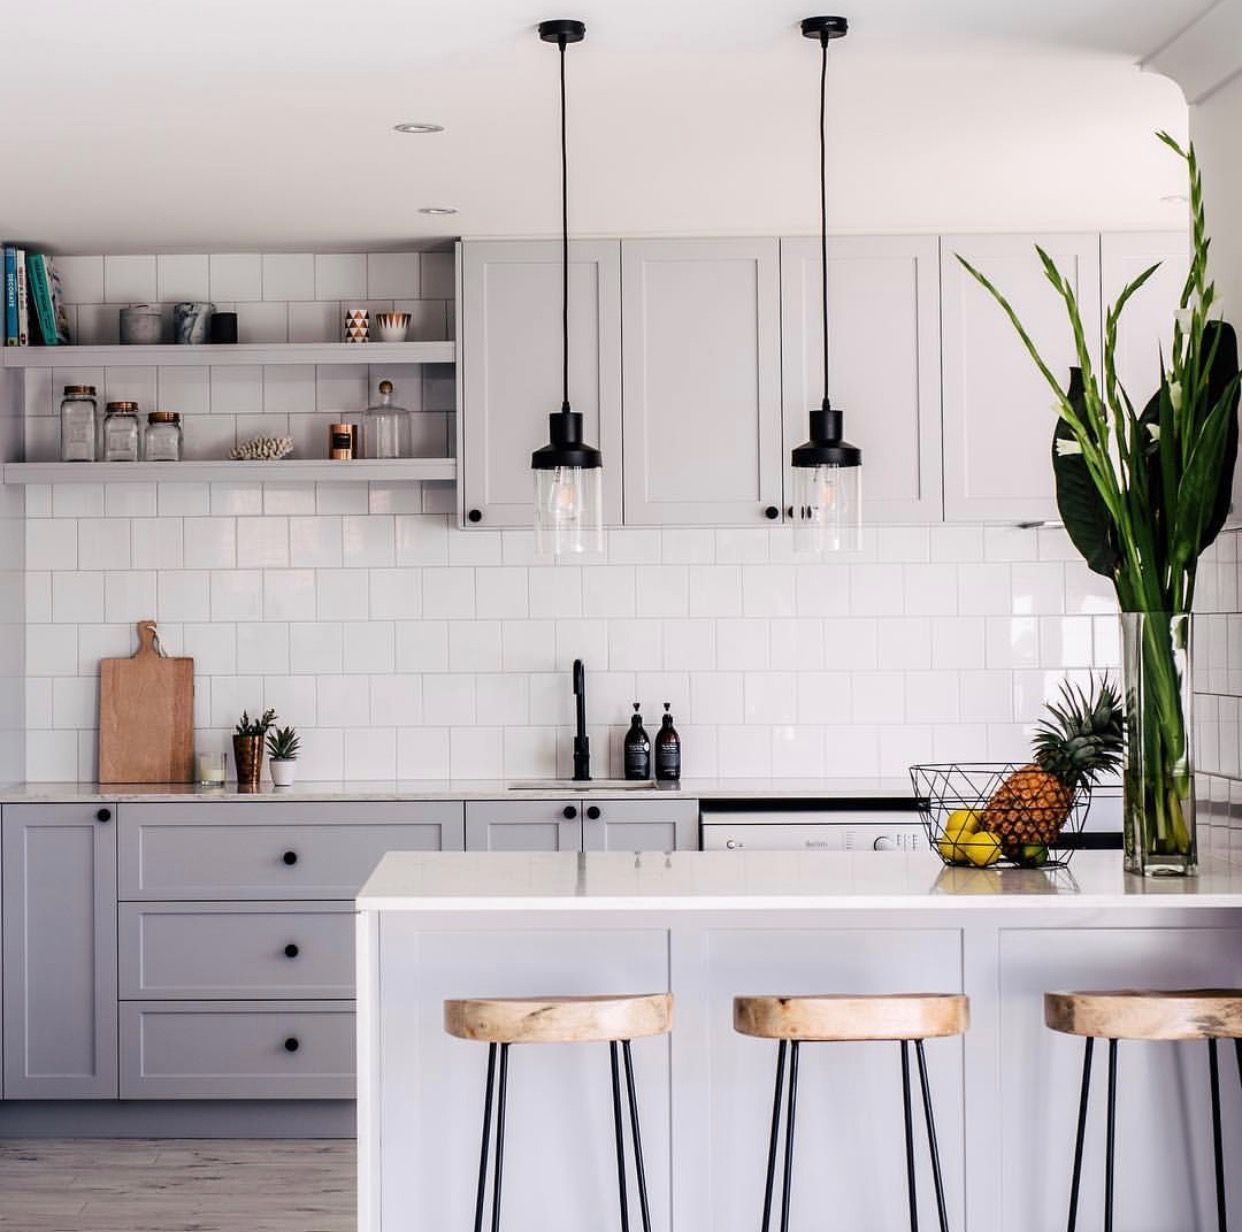 Three birds renovations | Our House | Pinterest | House